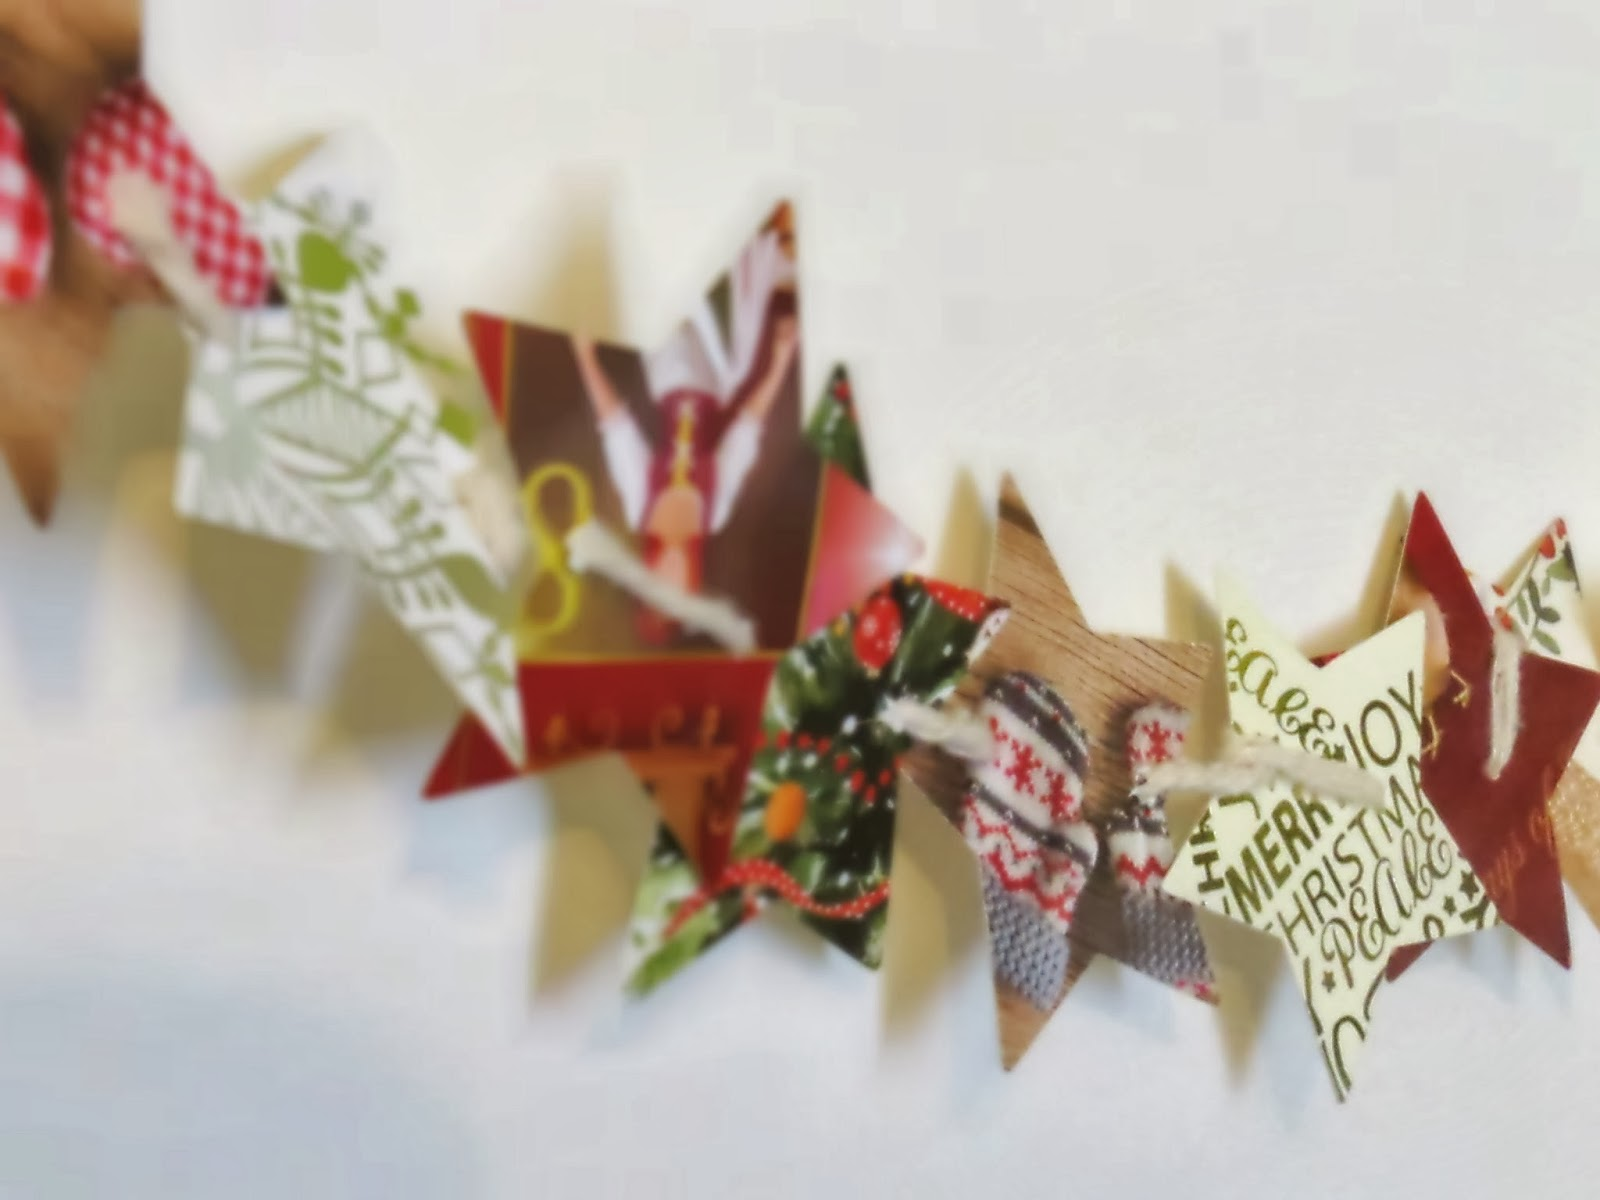 Star Chain - Christmas Card Recycling | Wheelingalong24